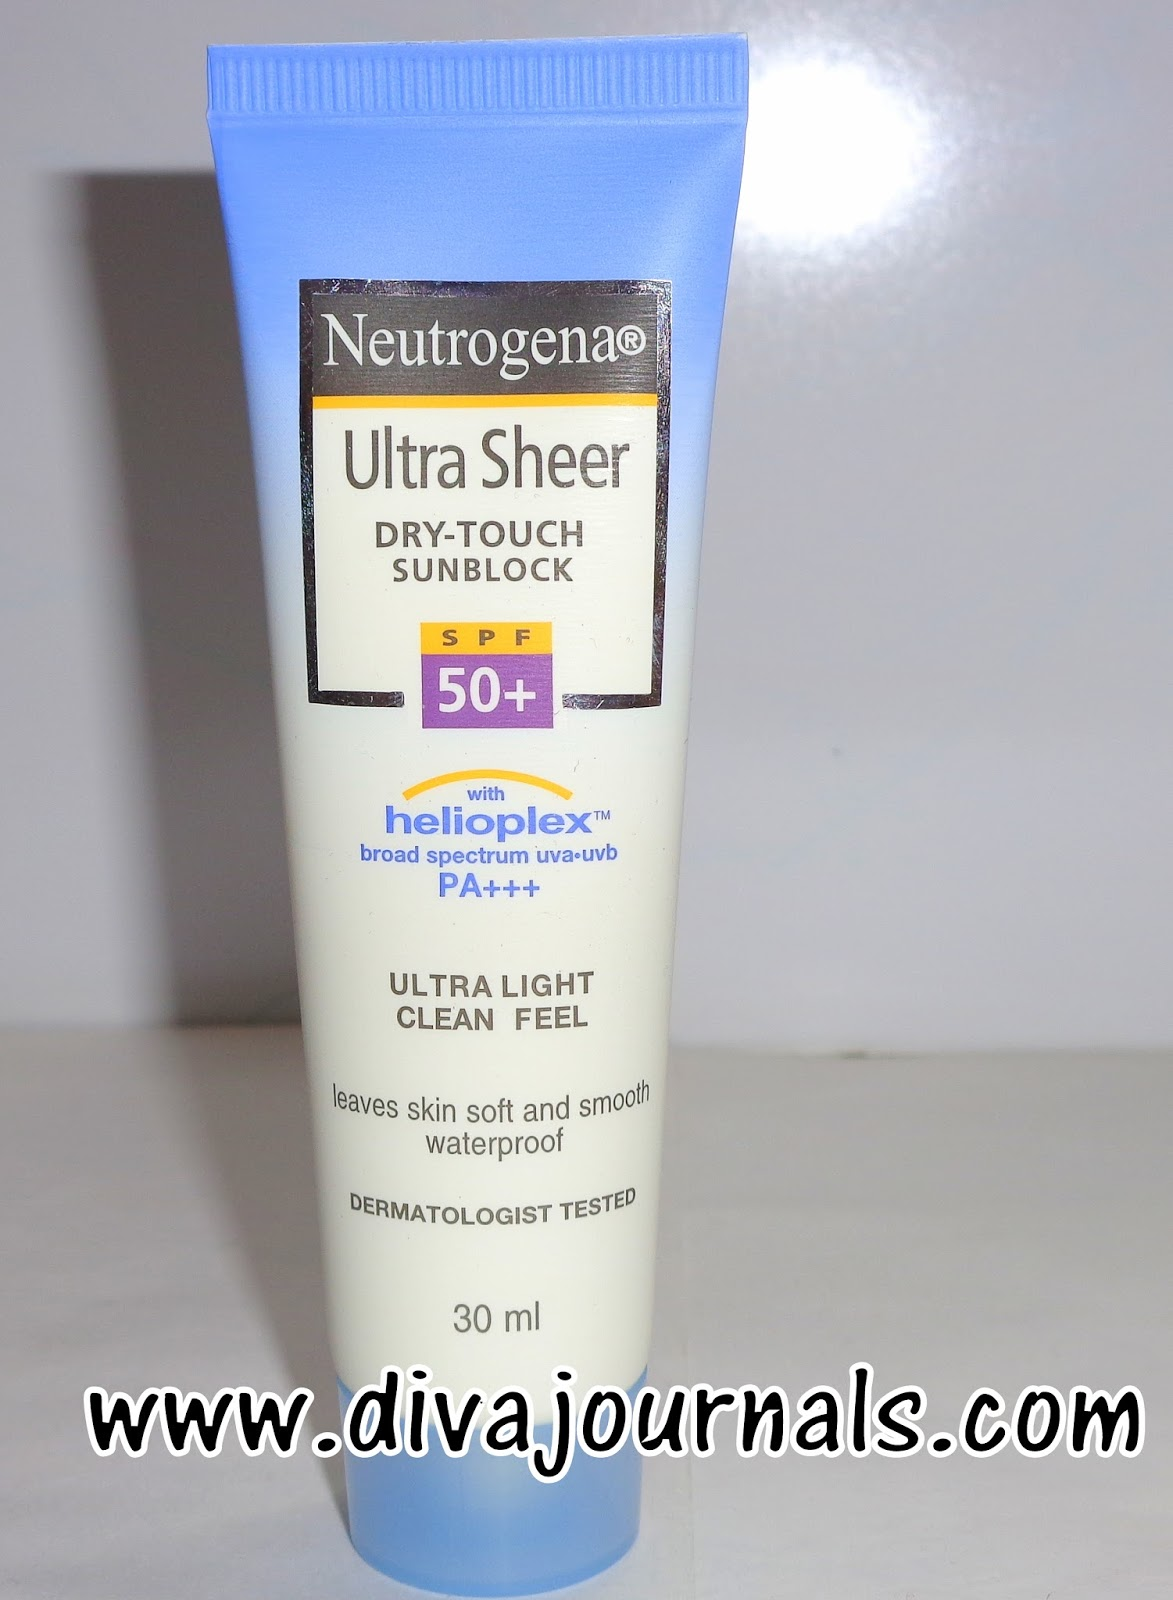 Neutrogena Ultra Sheer Dry Touch Sunblock Spf 50 Review Diva Journals Sunscreen Spf50 Face